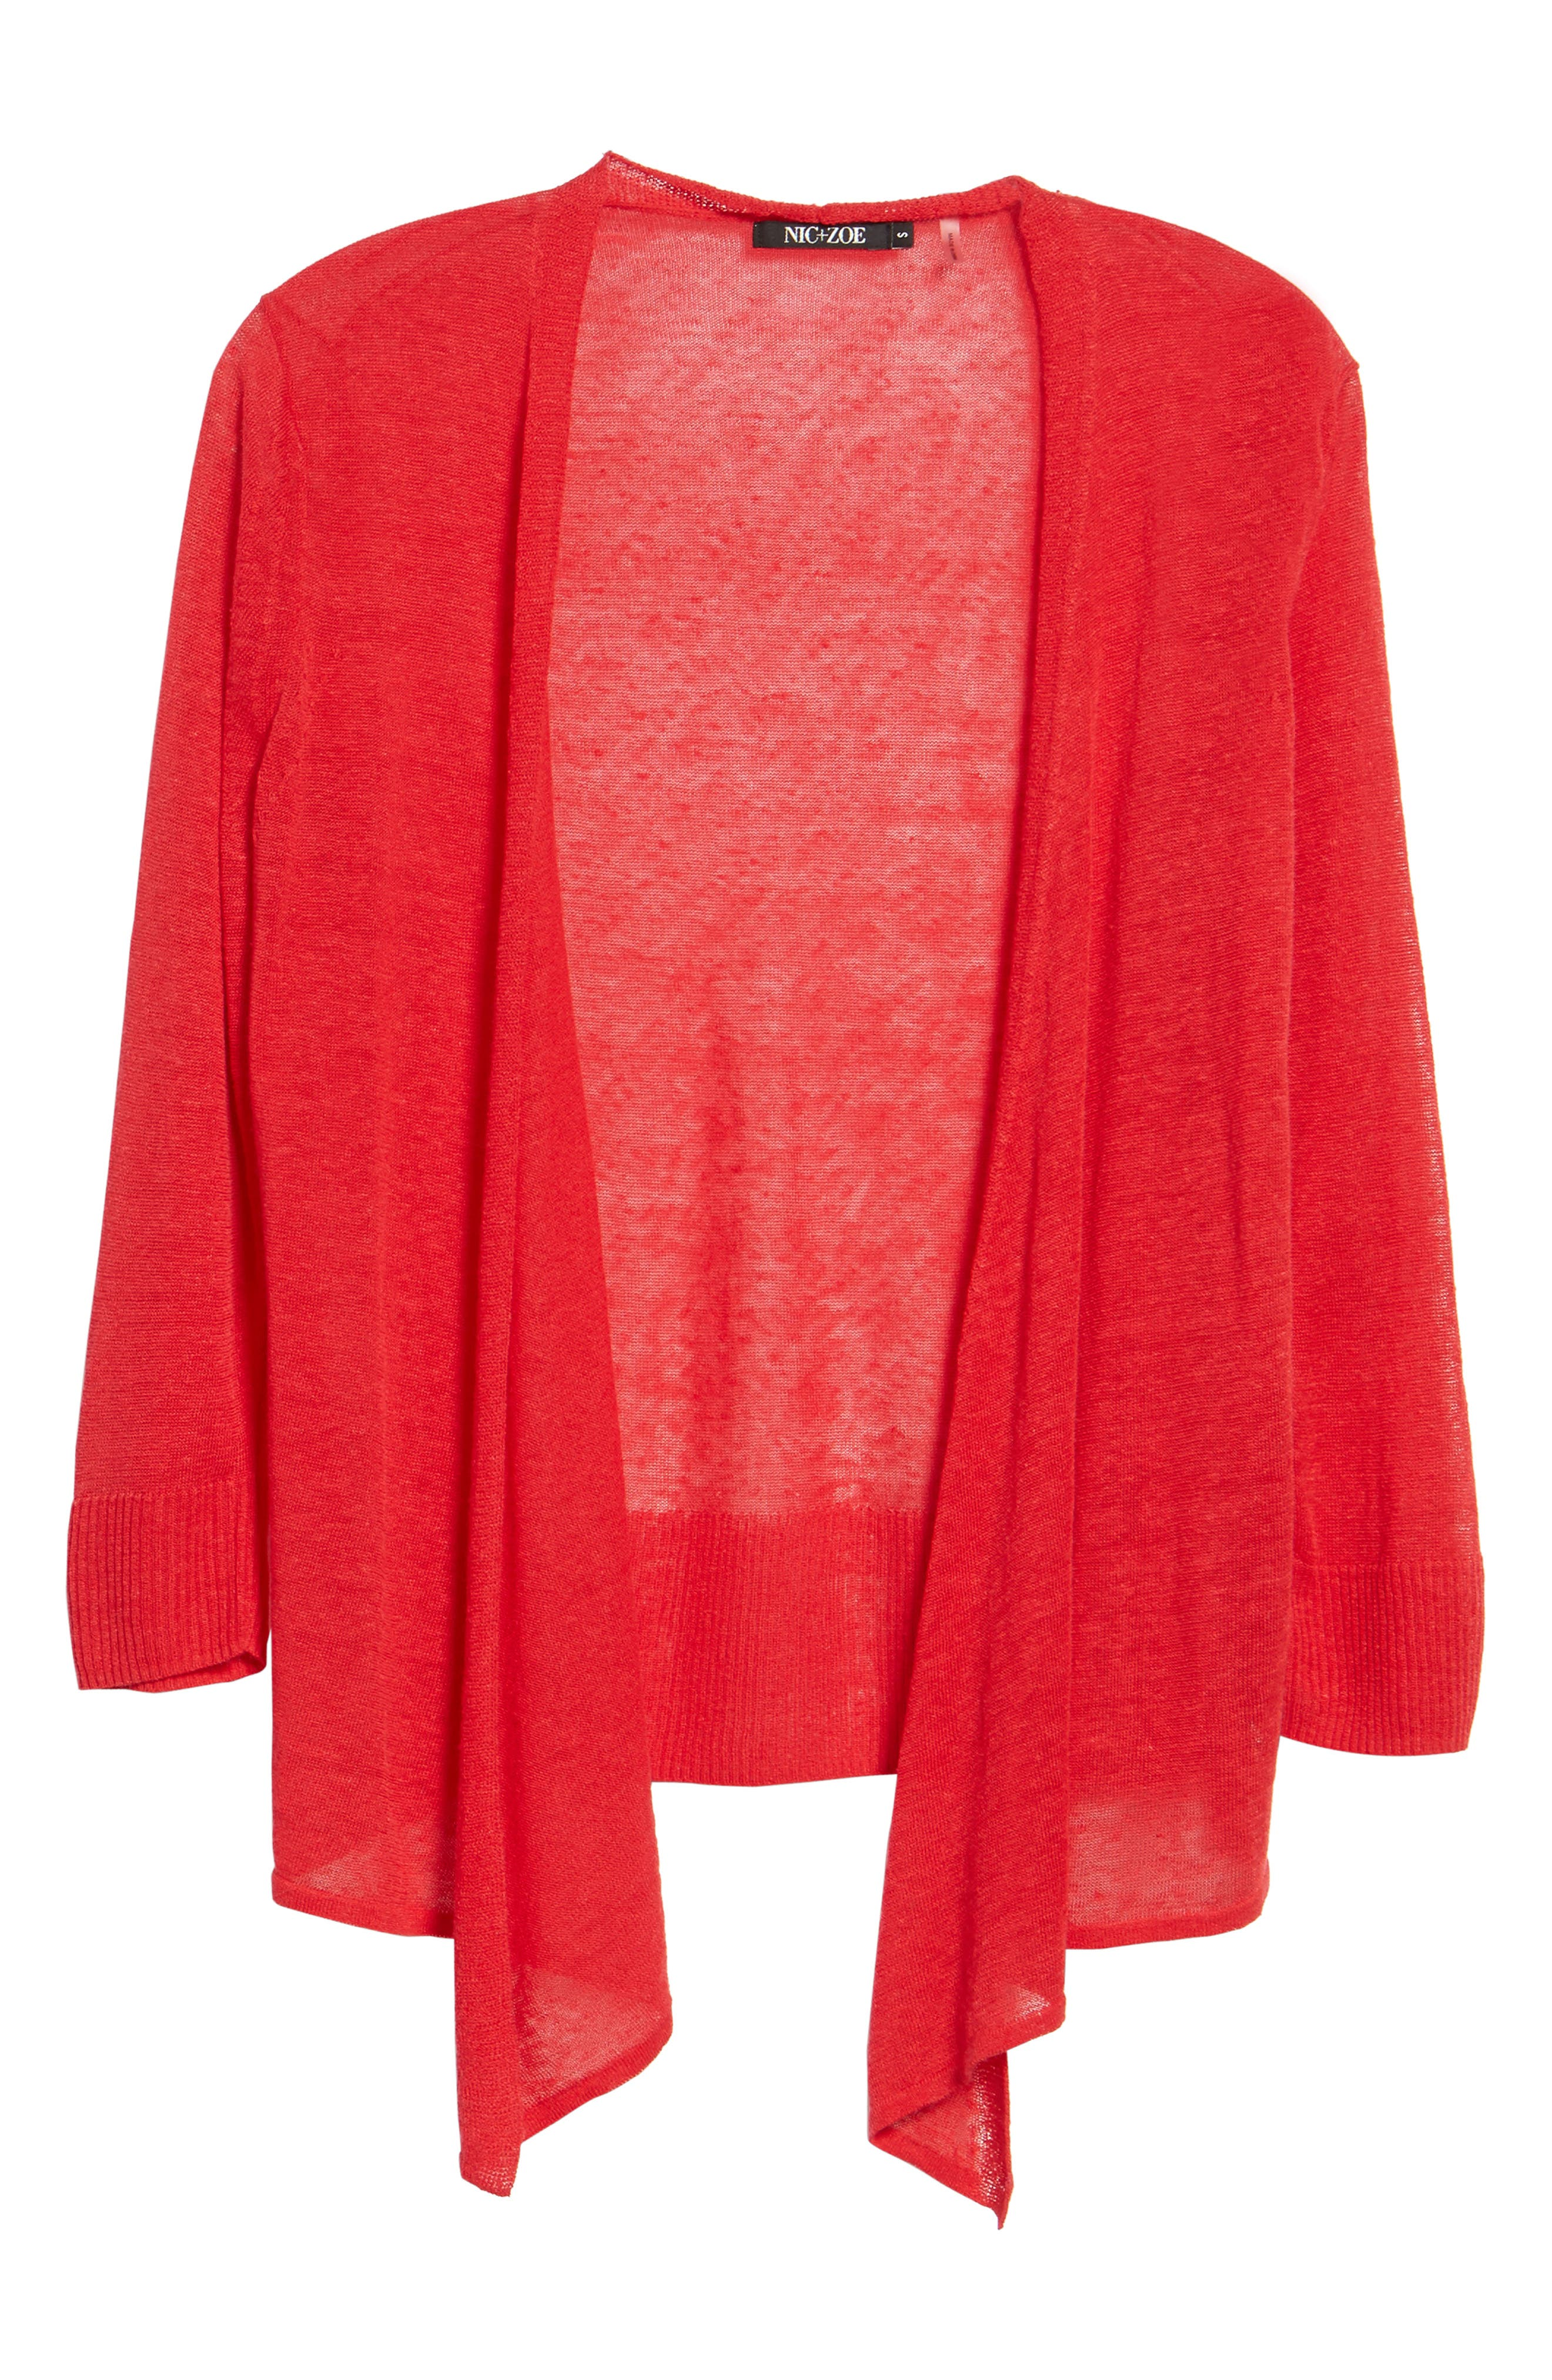 4-Way Cardigan,                             Alternate thumbnail 6, color,                             True Red